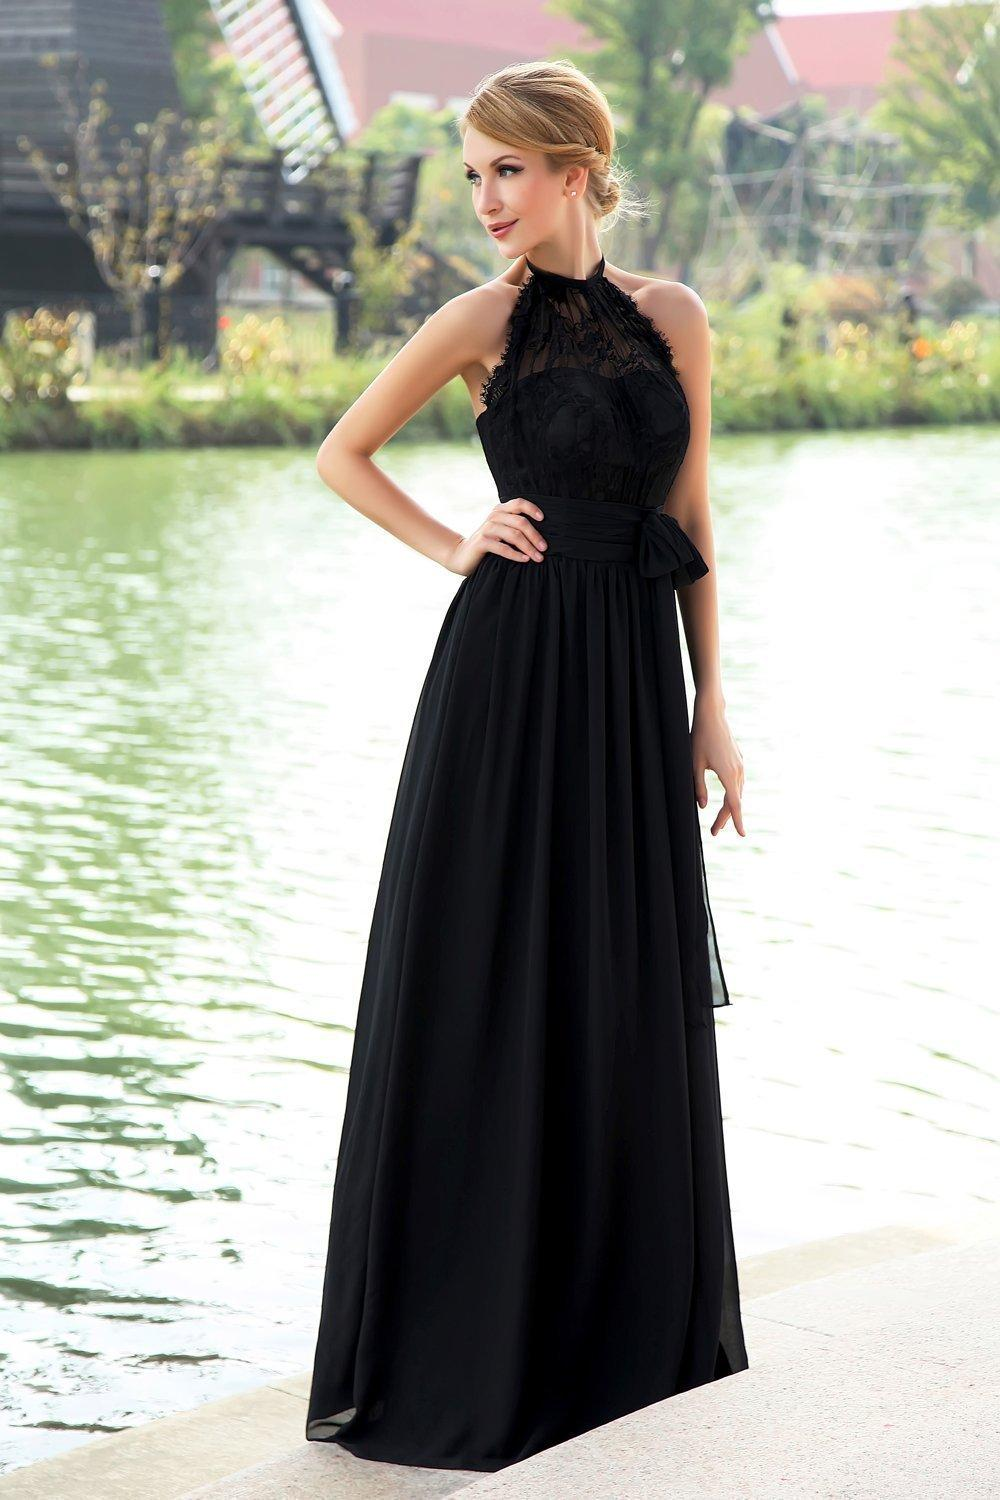 Simple Black Formal Dresses Evening Wear Halter Neck Lace Top Draped Chiffon Long Low Back Cheap Women Prom Dress Party Gowns 2015 Prom Dresses With